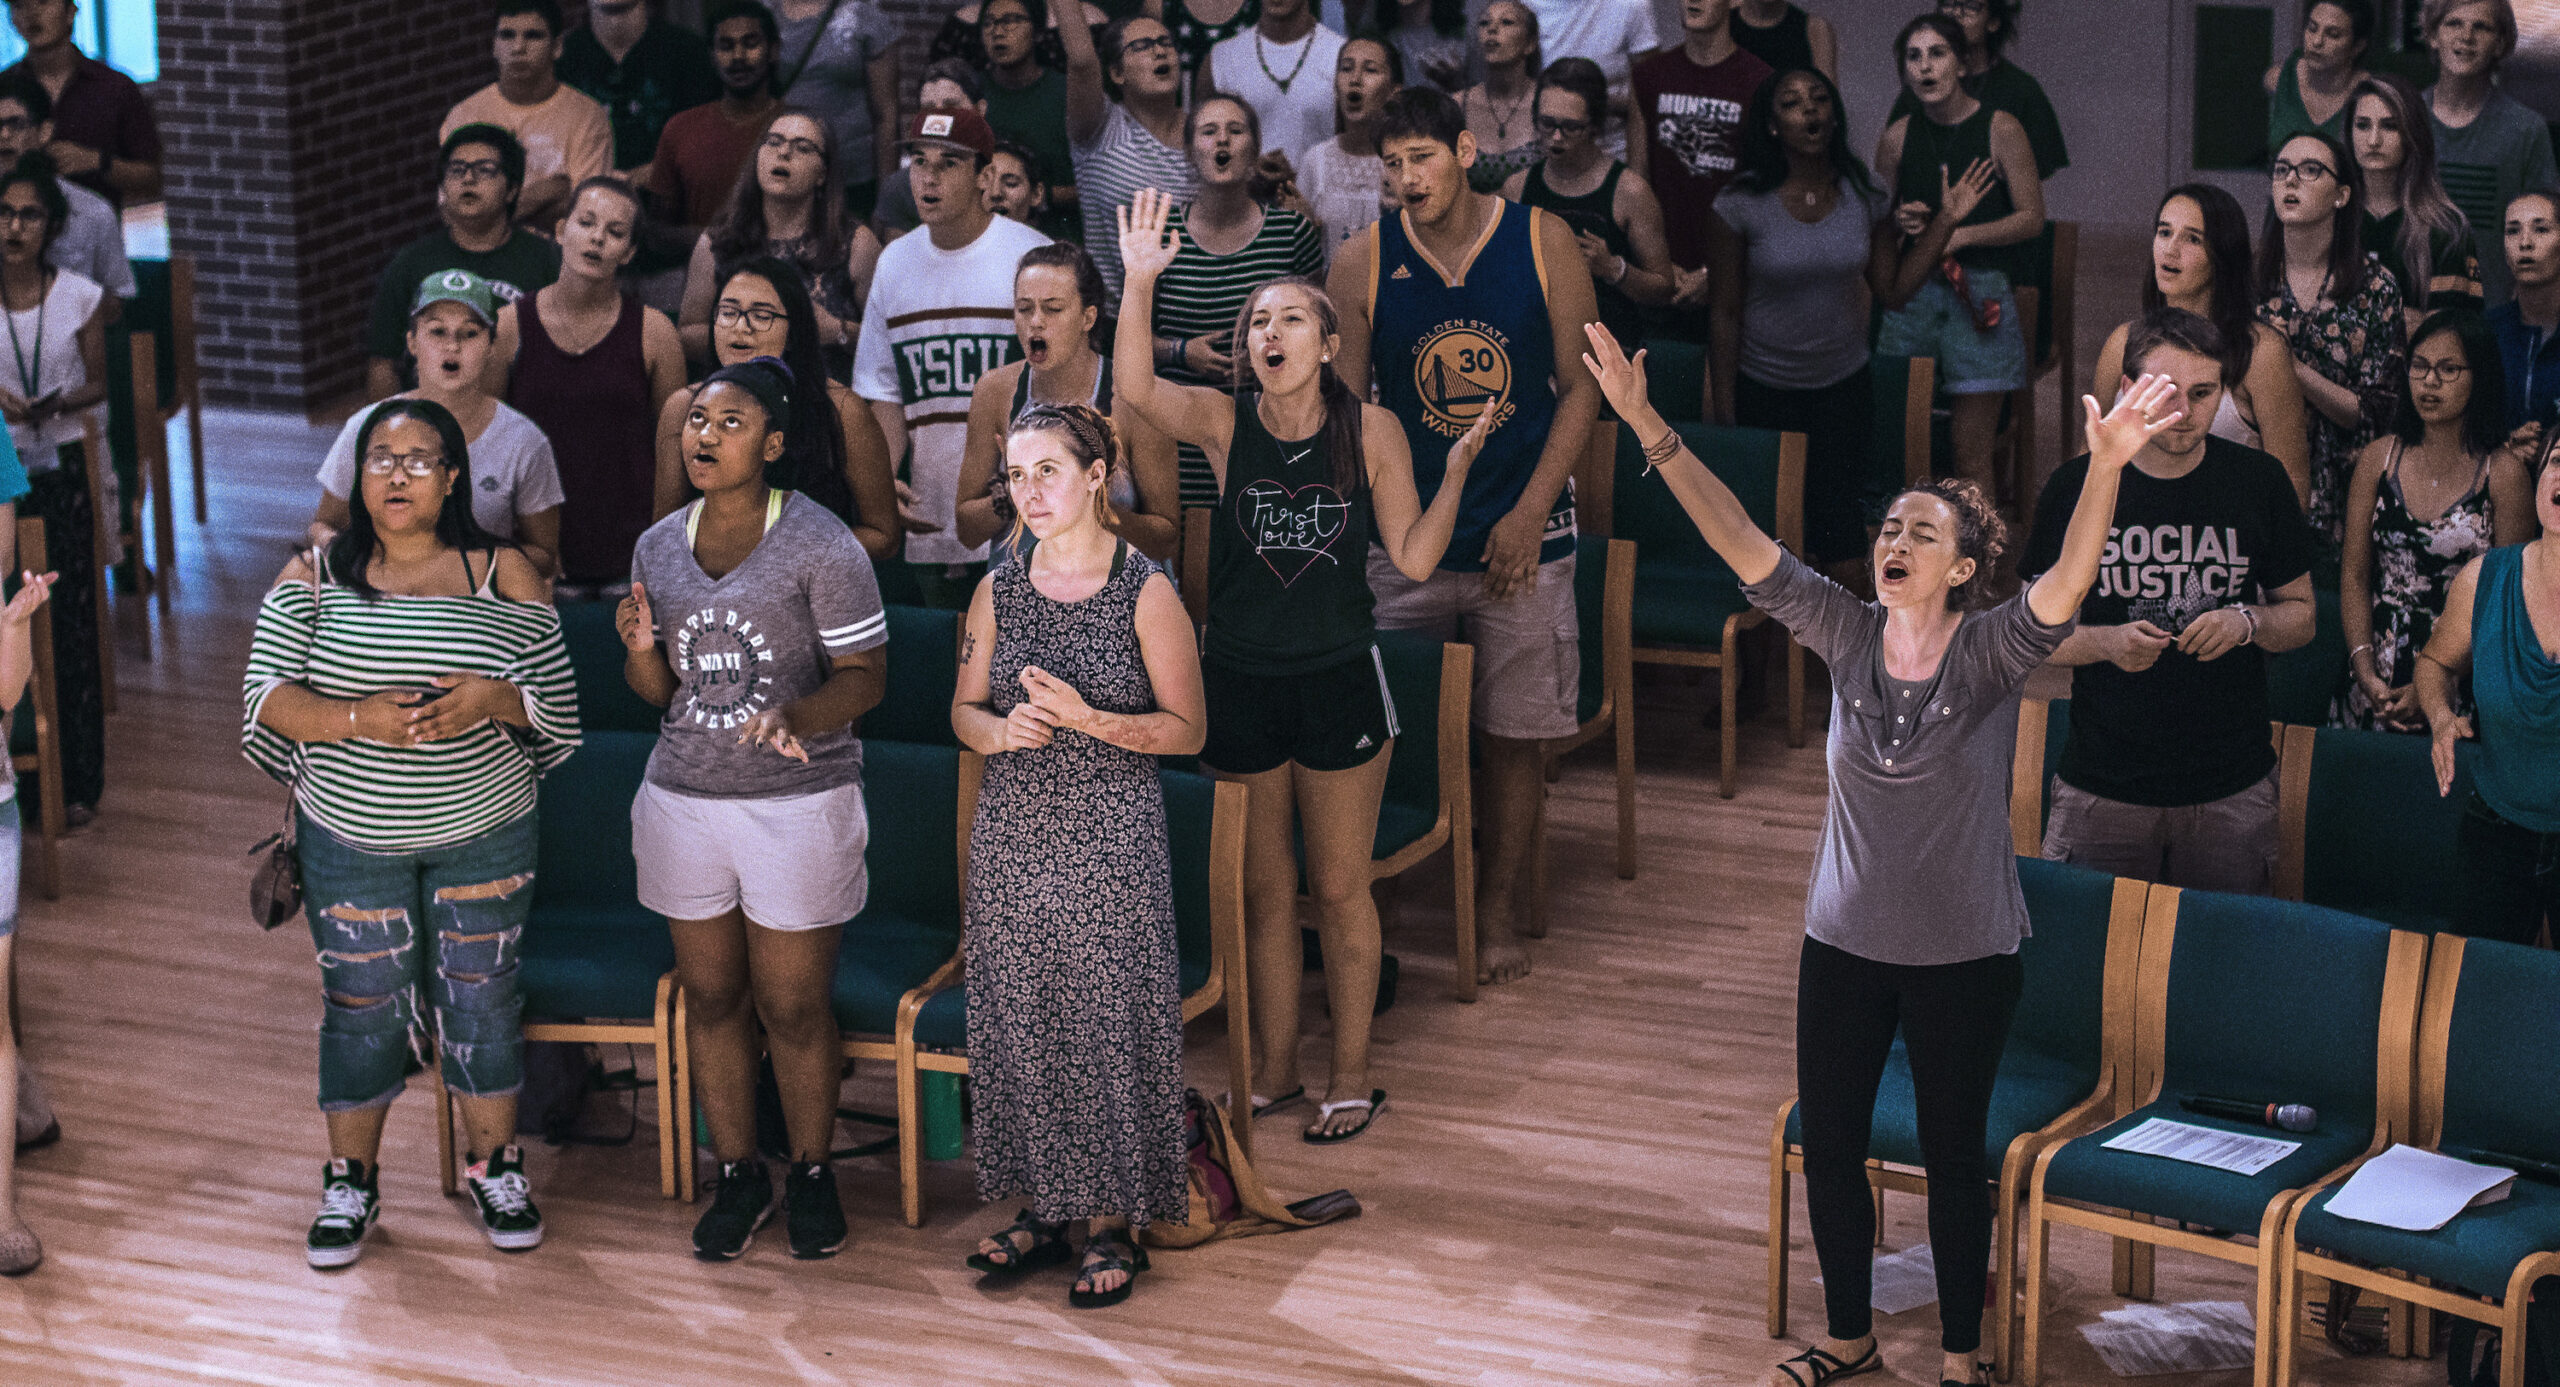 Students gathered in chapel sing and raise hands in worship.